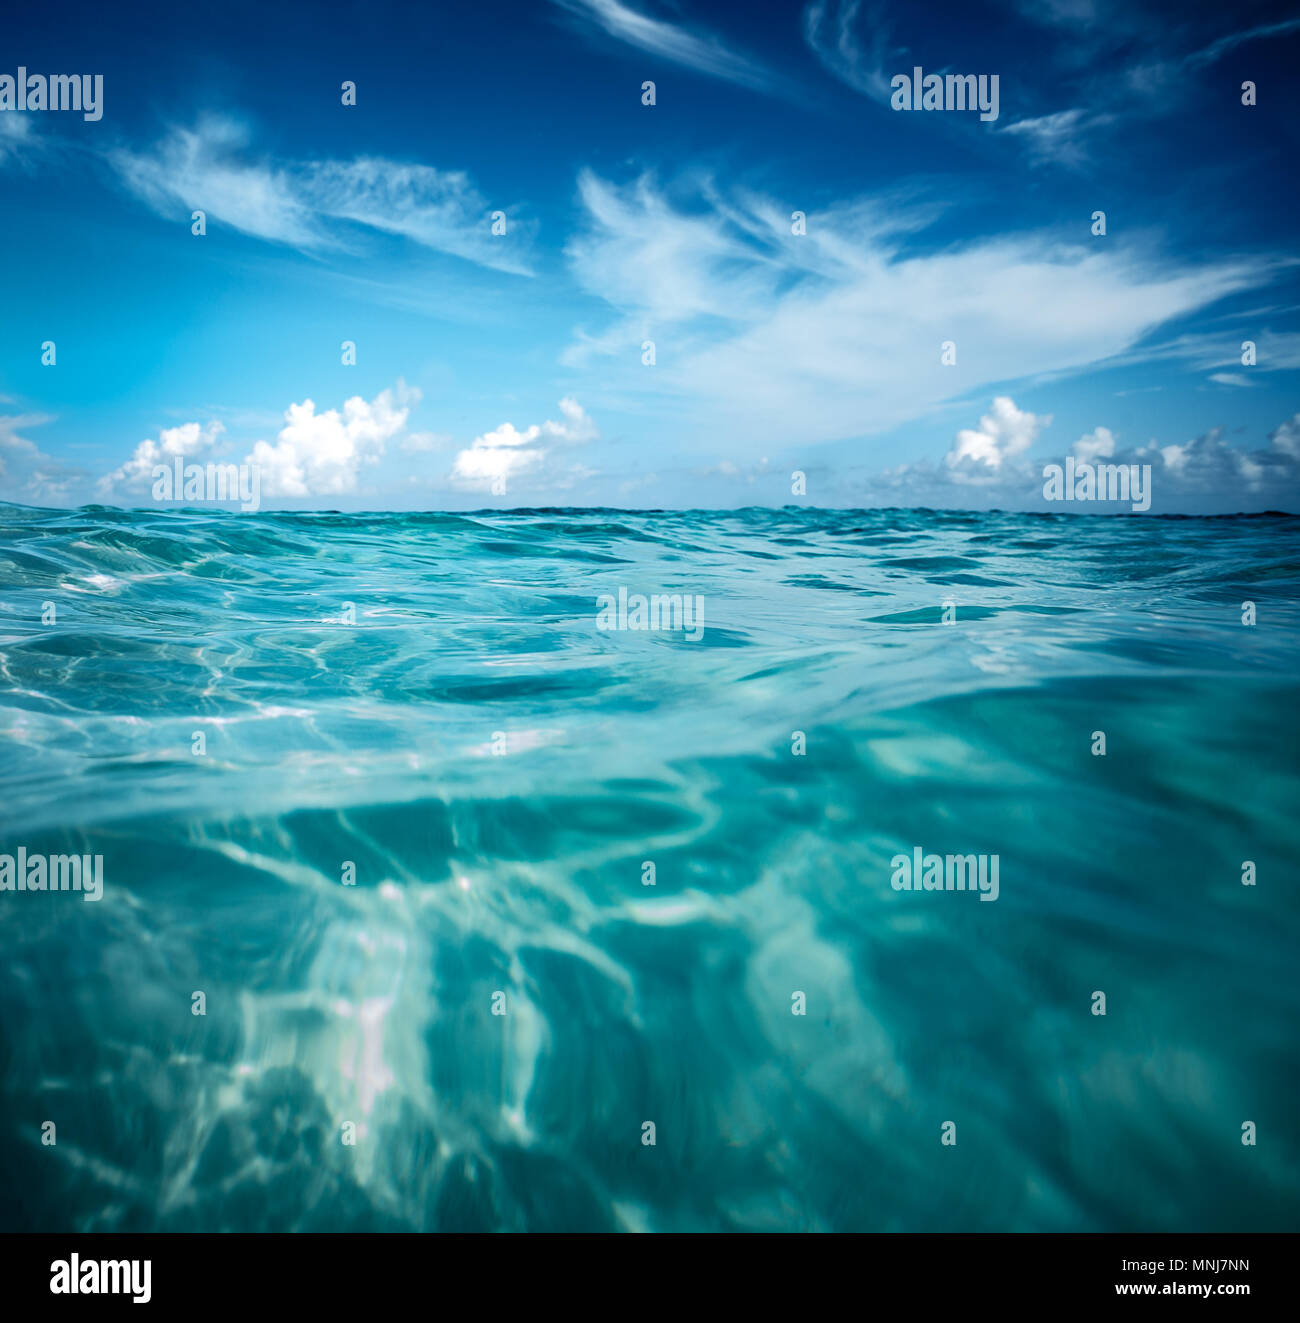 Beautiful Seascape Background Amazing View Of Transparent Turquoise Water And Blue Sky Good Warm Sunny Day Summer Vacation On The Beach Stock Photo Alamy